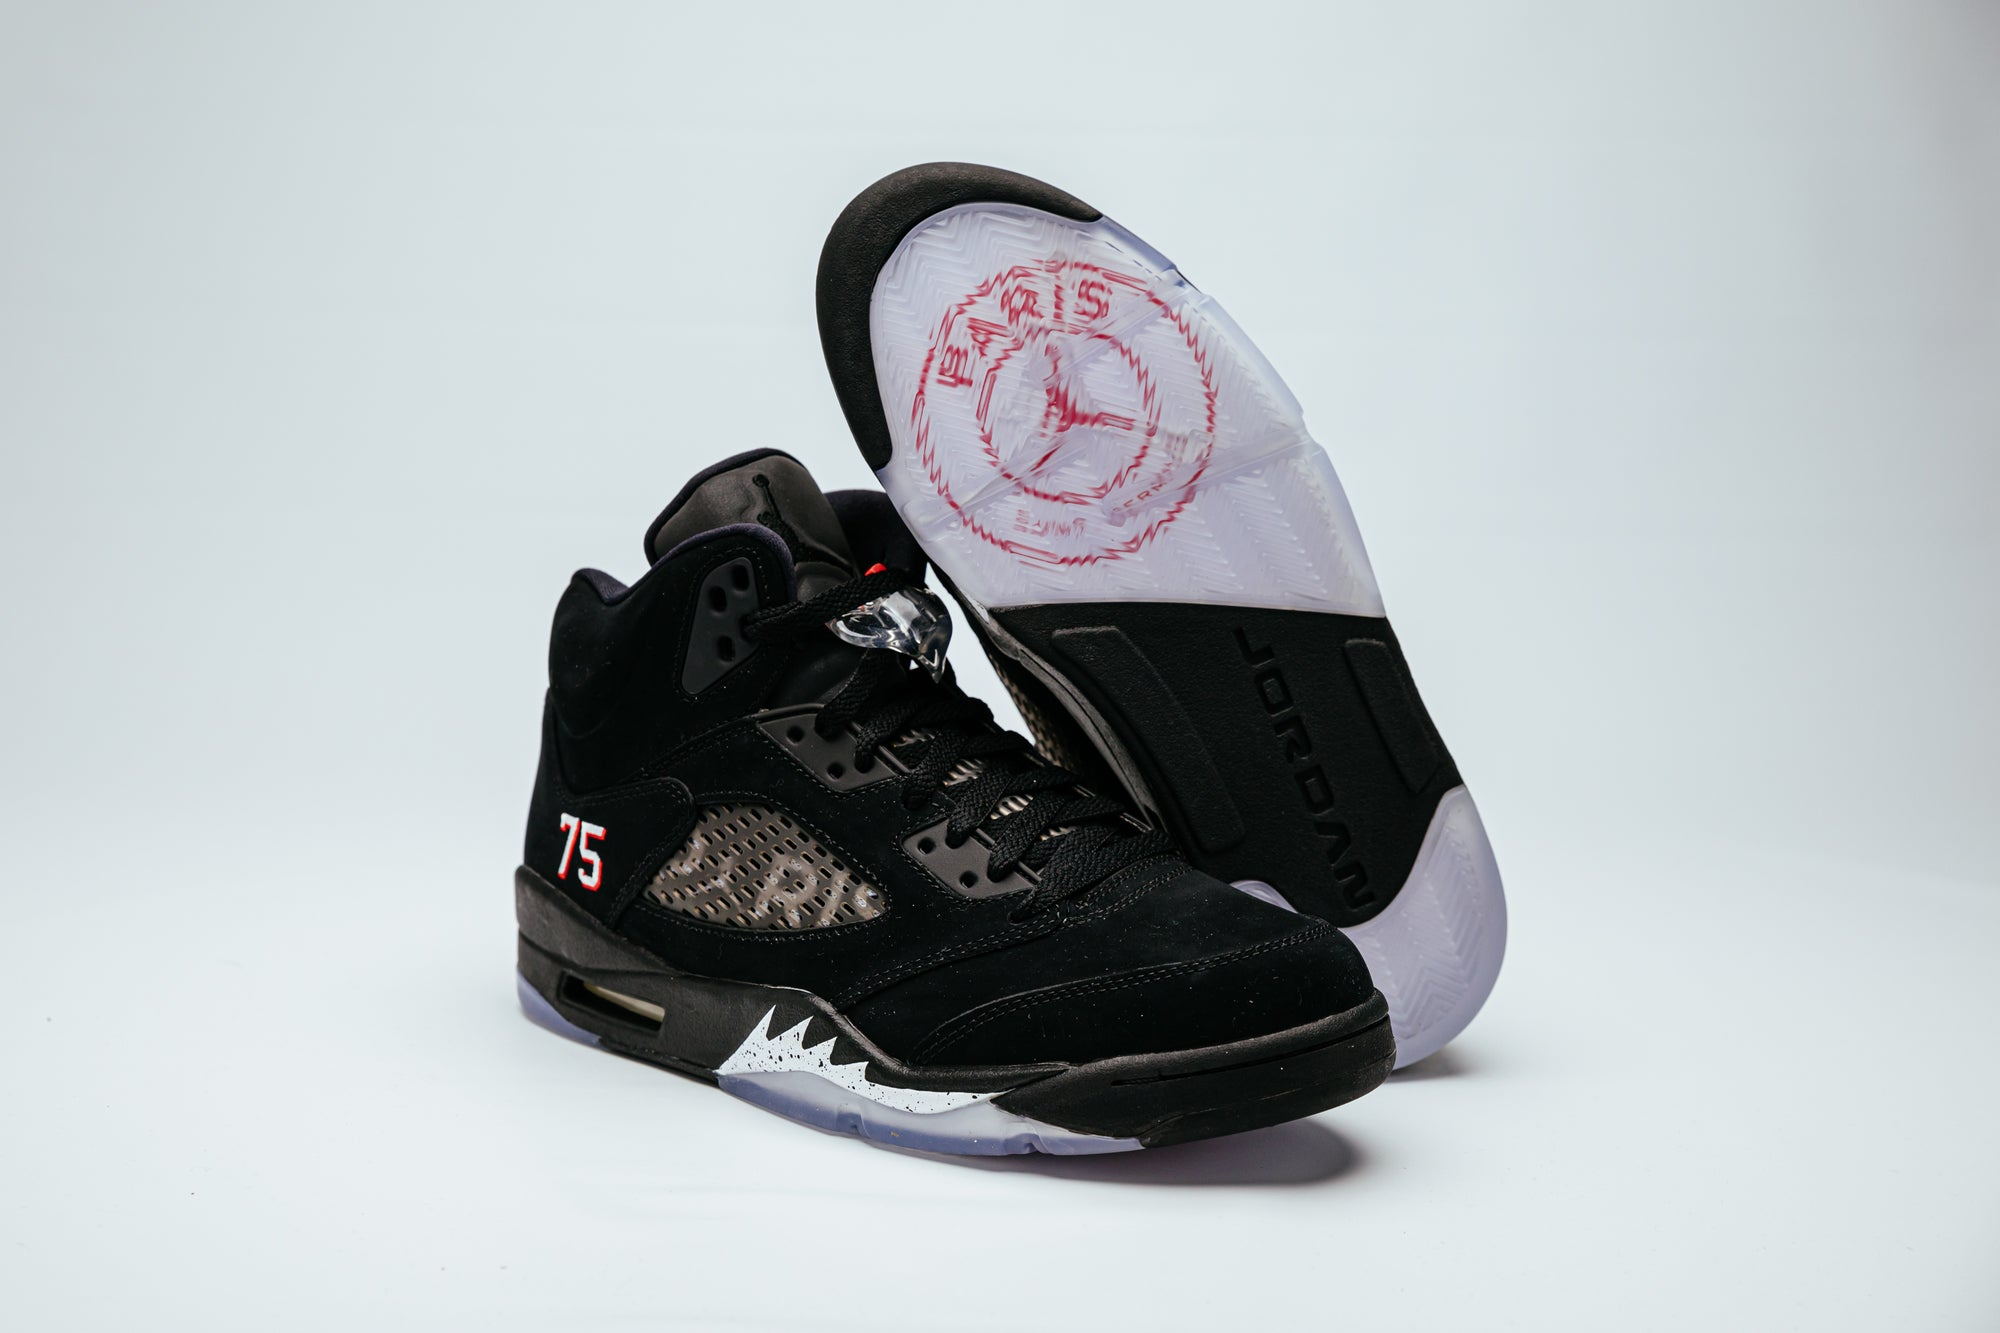 Probar Plantación medianoche  Air Jordan 5 Retro - Paris Saint-Germain | ALLSOLEDOUT